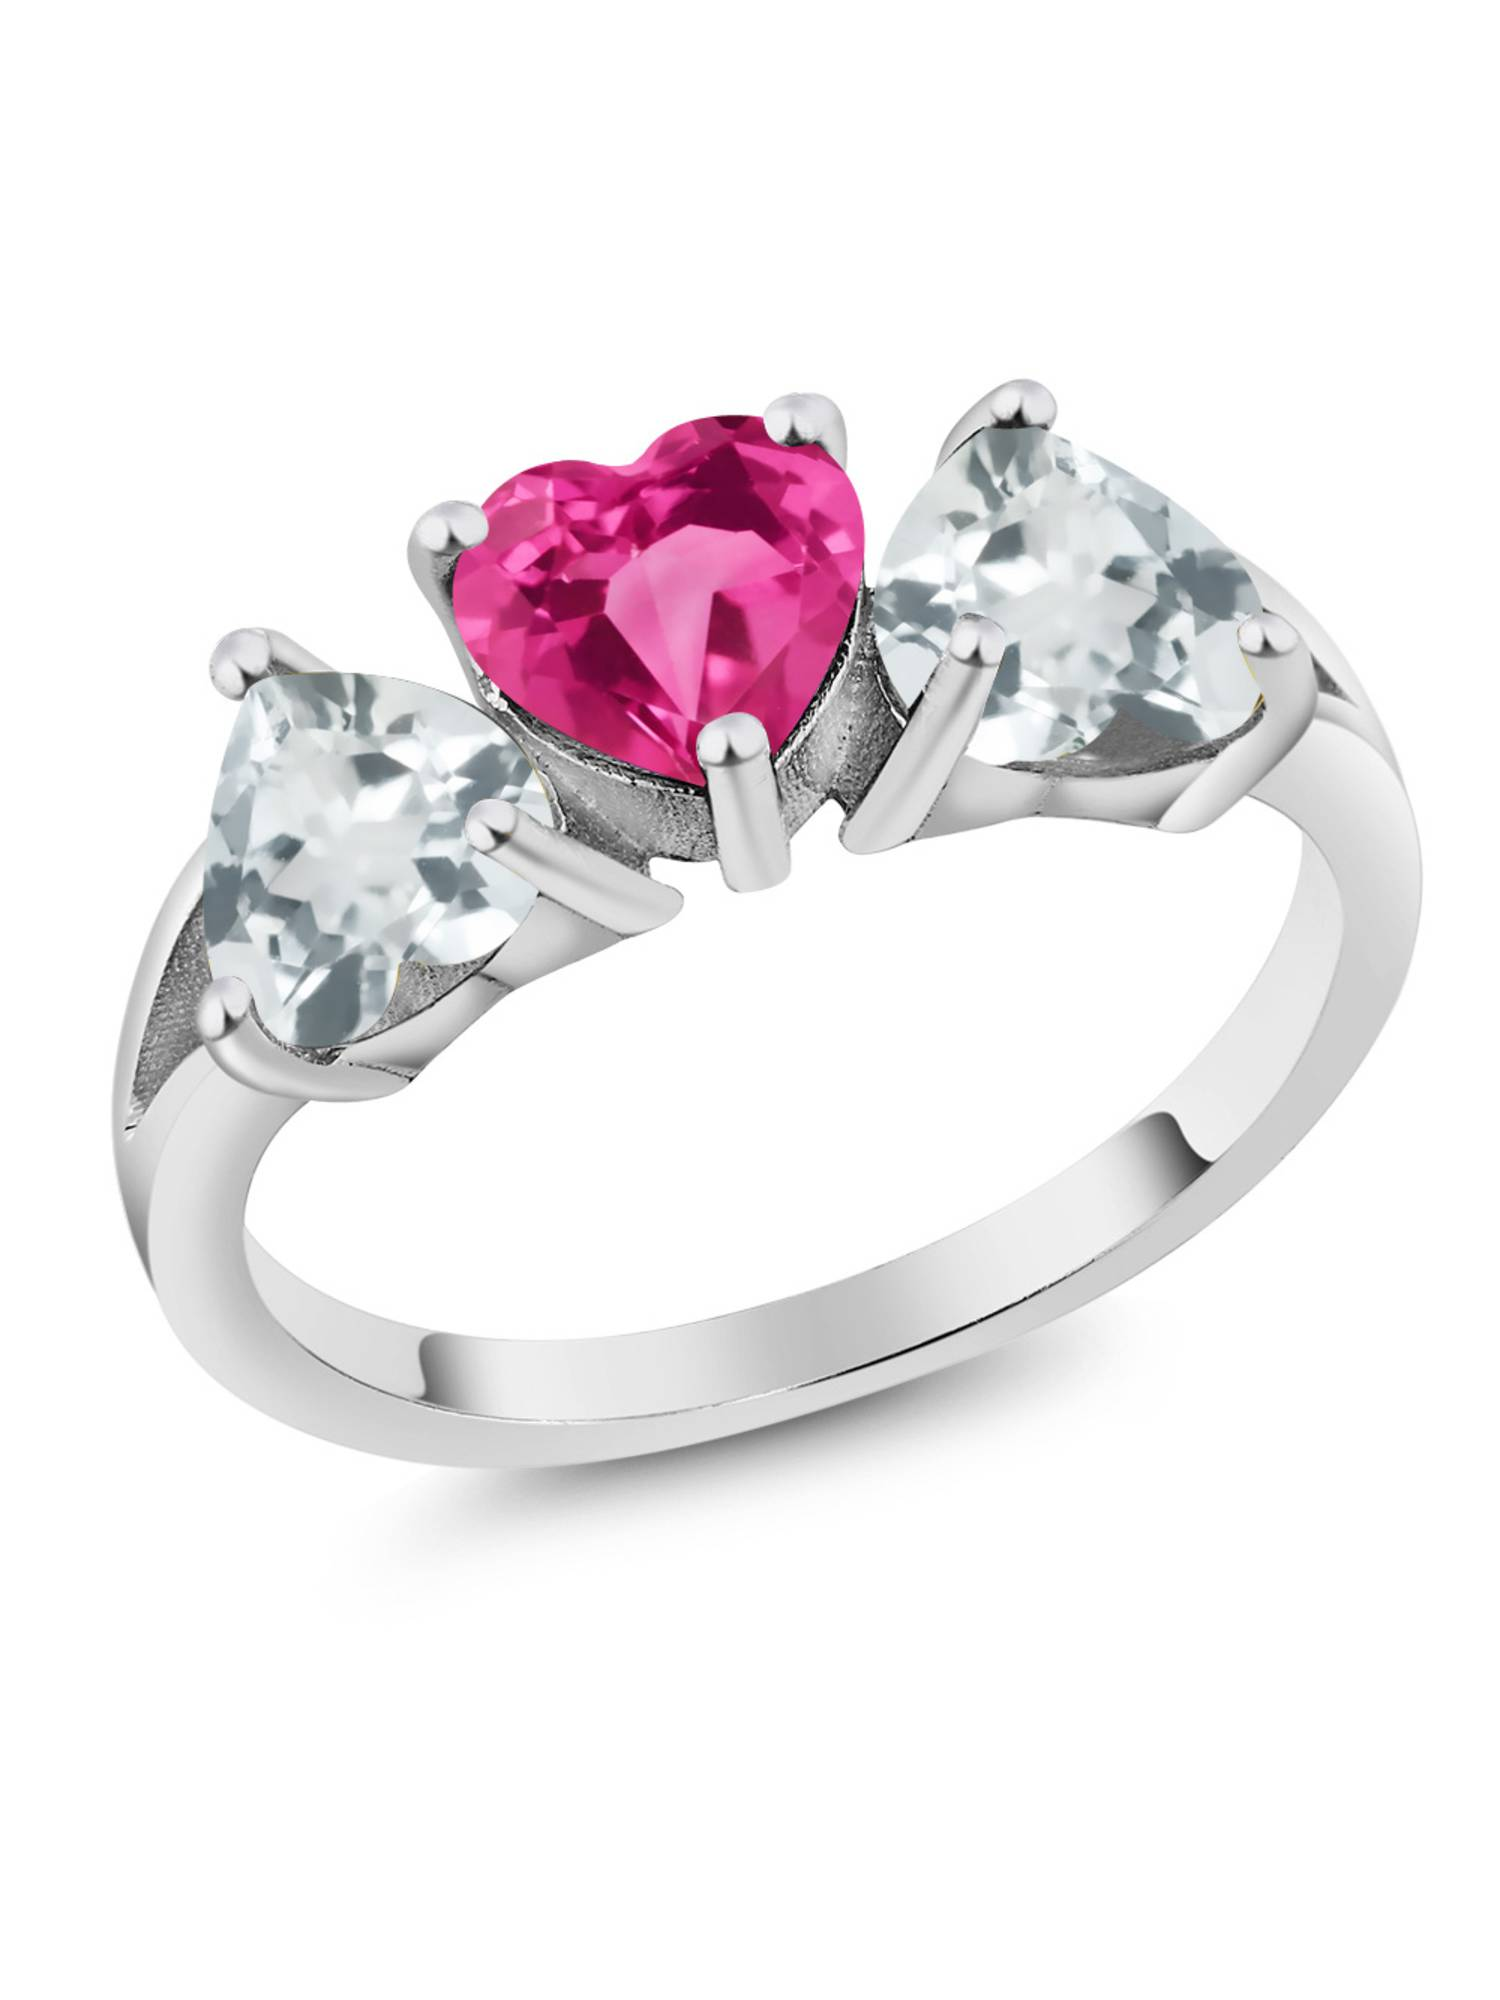 2.14 Ct Pink Created Sapphire & Sky Aquamarine 925 Sterling Silver 3-Stone Ring by